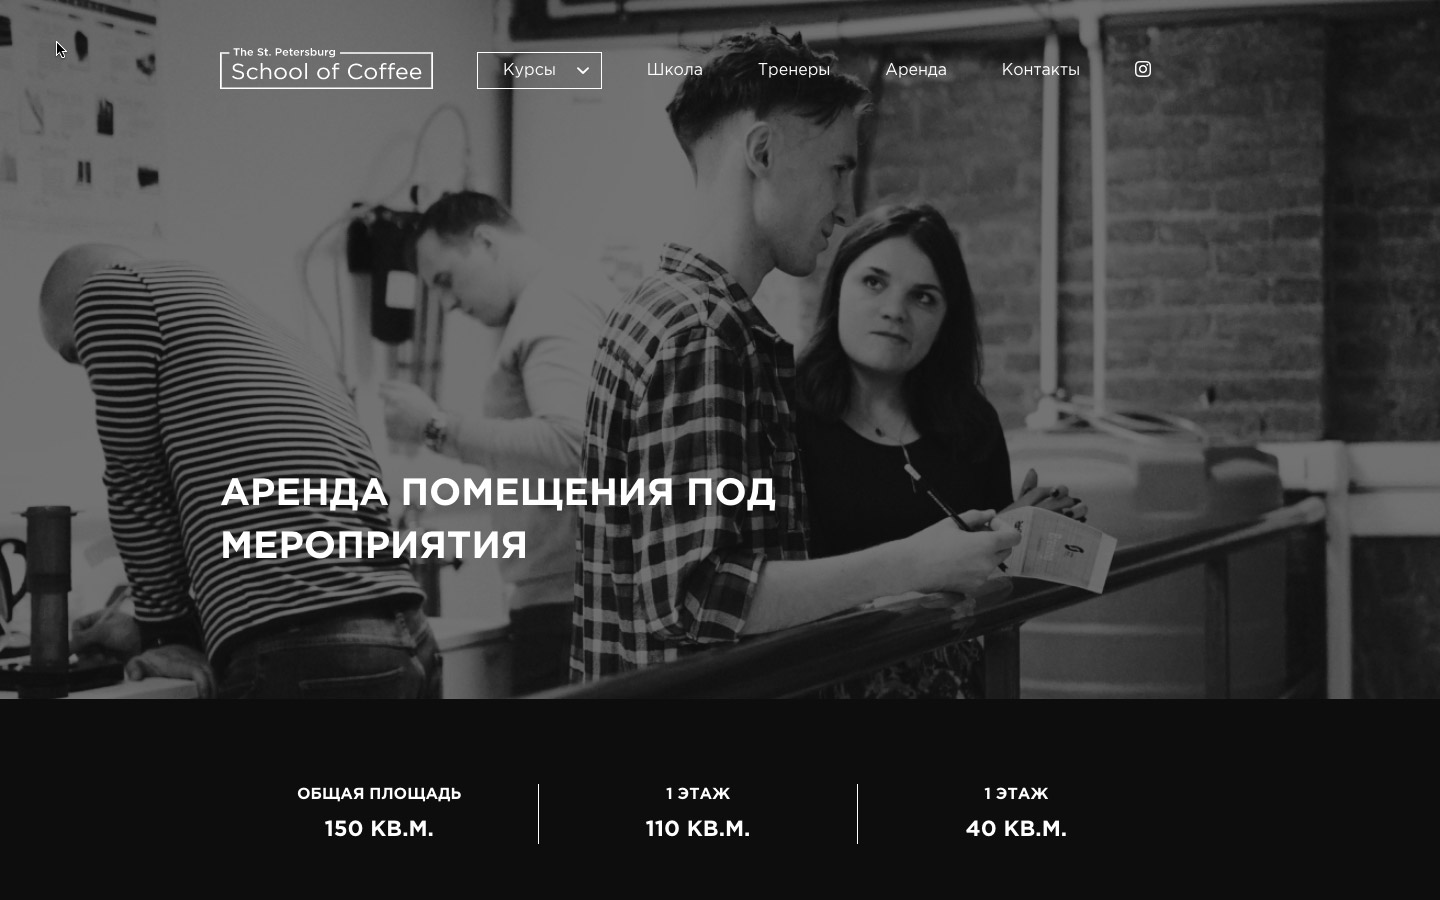 Разработка сайта школы кофе на WordPress